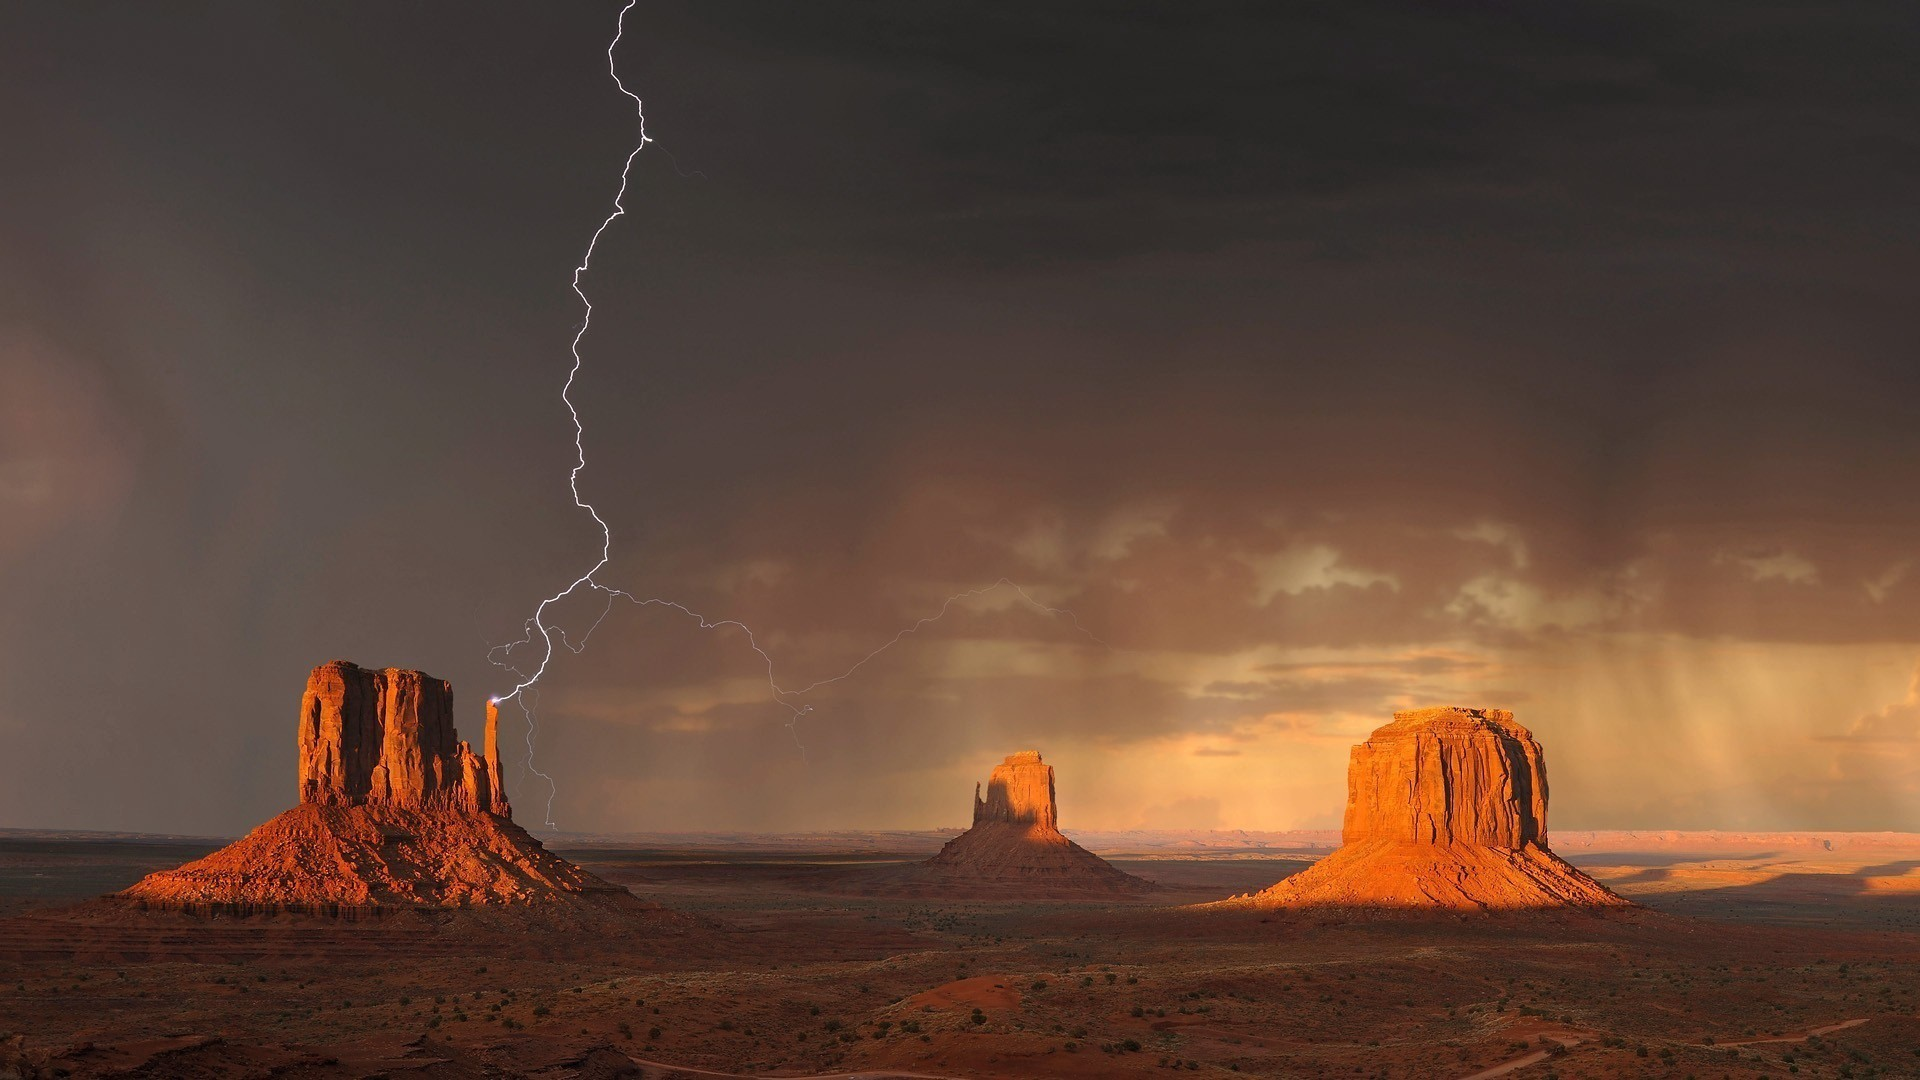 Three formations in Monument Valley Arizona. This one has a bolt of lightning touching the point of a formation